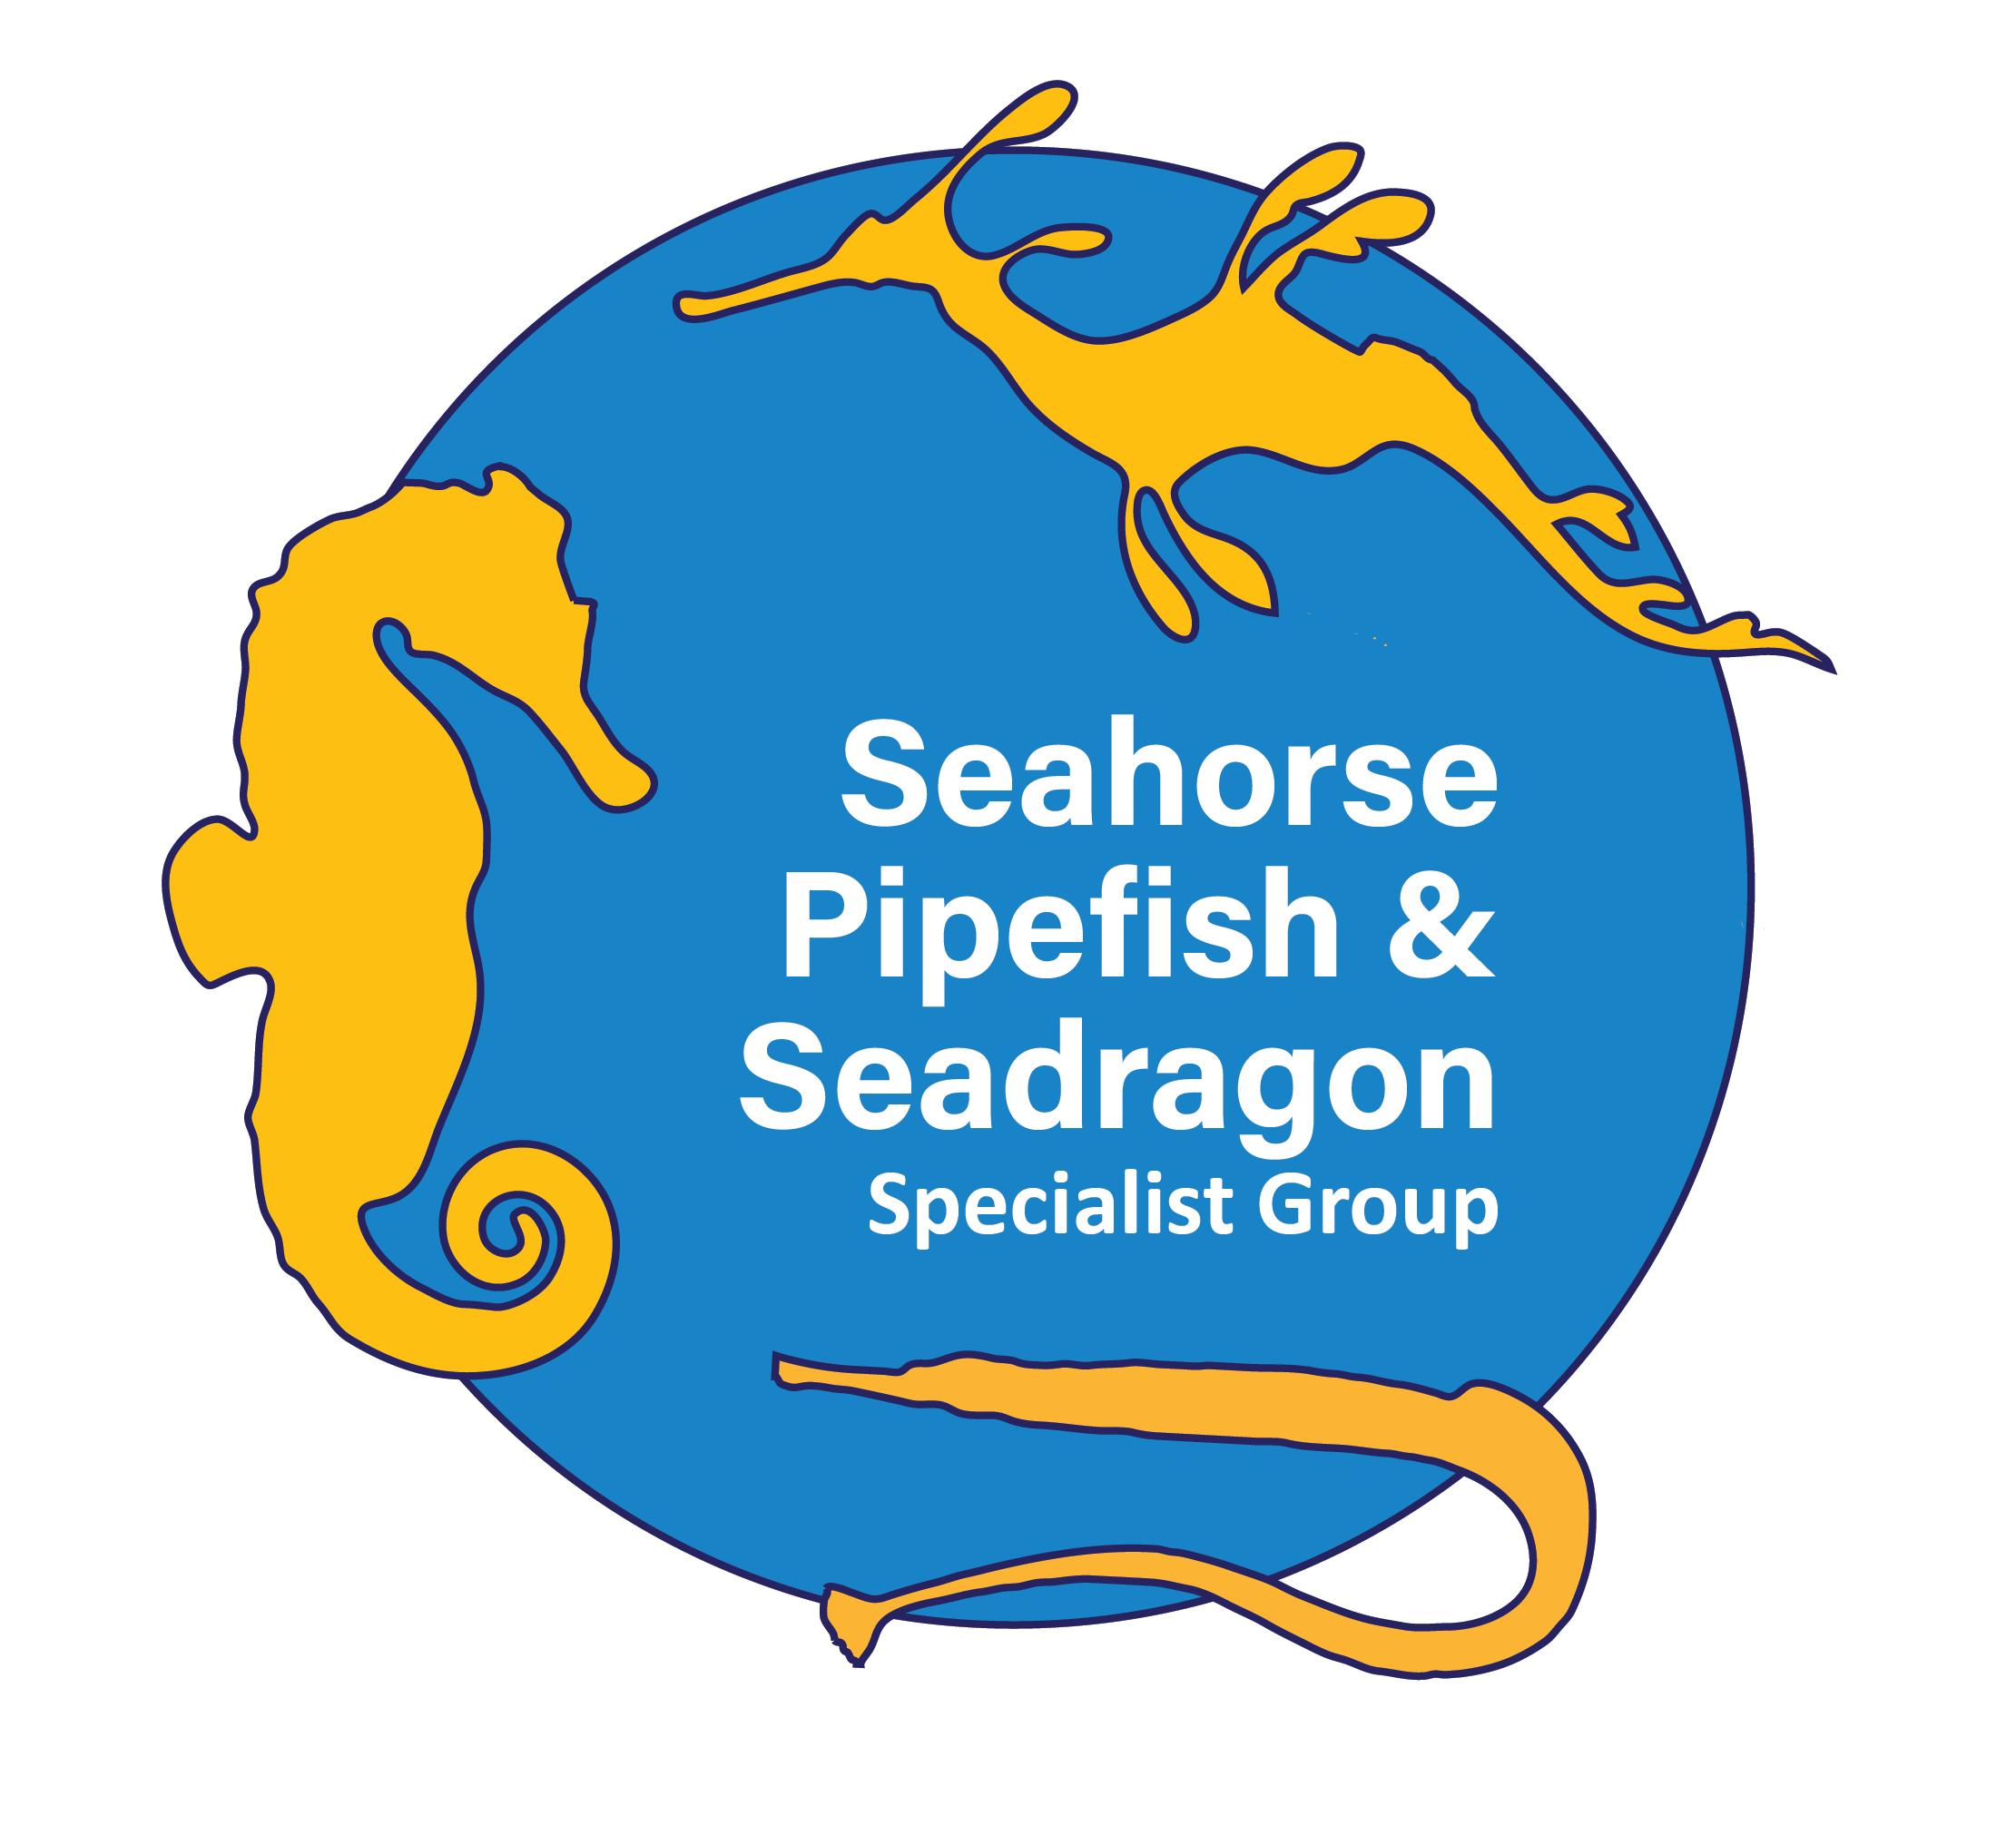 newIUCNseahorse logo - square.png